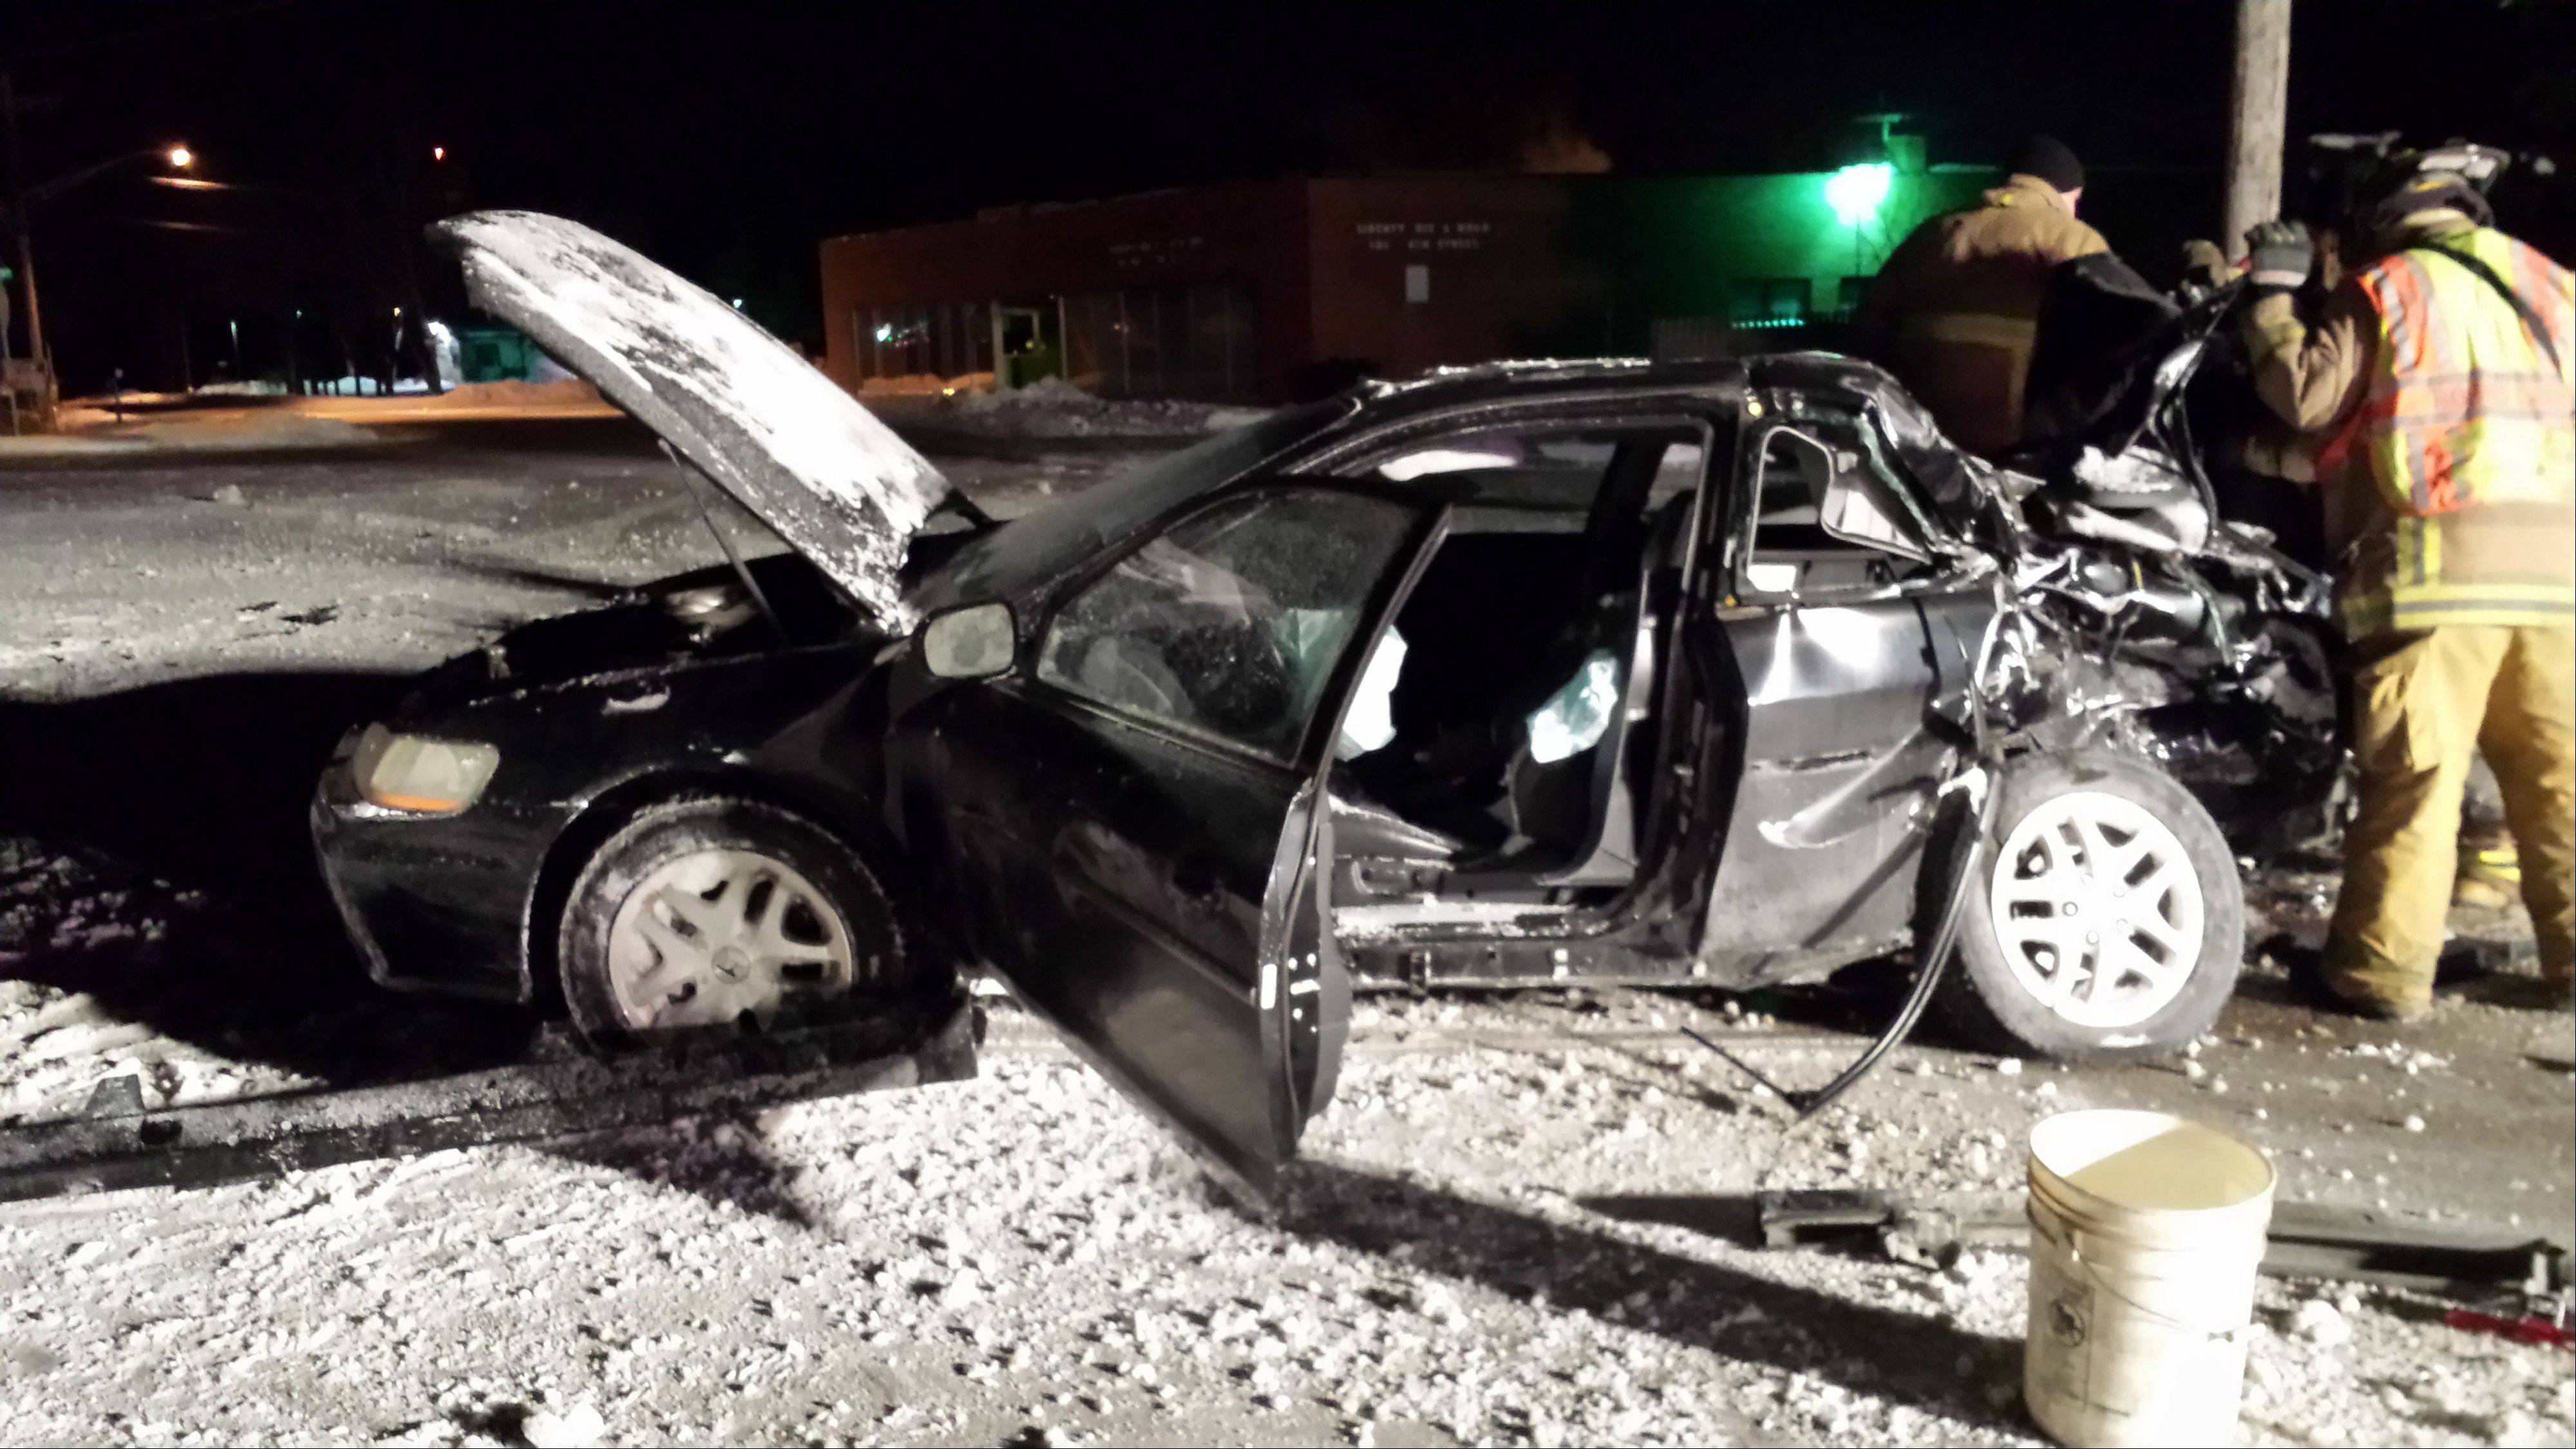 A Lake County Sheriff�s detective escaped injury Monday night when his unmarked car became stuck on snow near railroad tracks in Round Lake Park and was struck by an oncoming Metra train. The car was not so fortunate. No injuries were reported aboard the train.